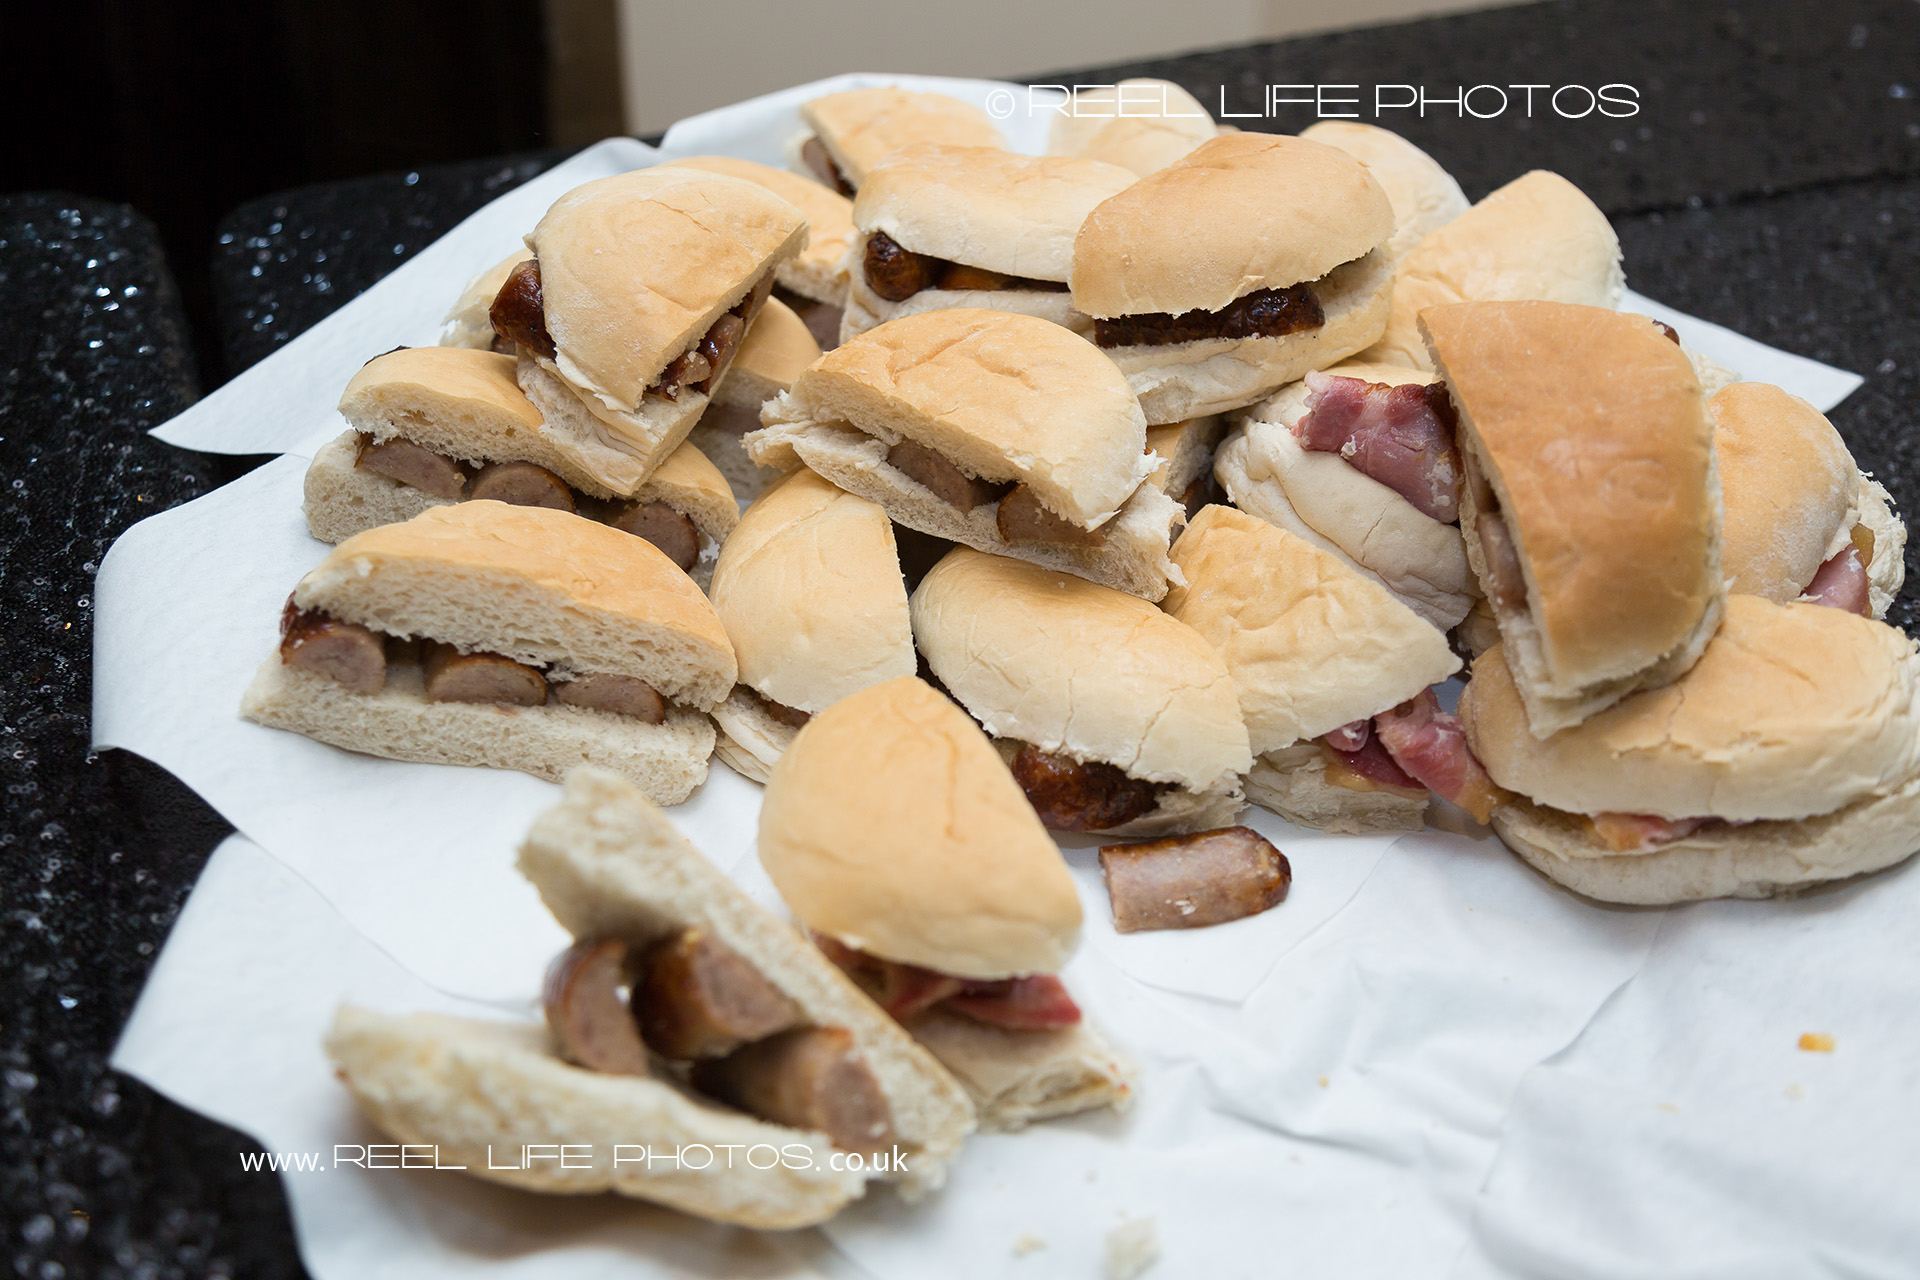 Now which is it to be?  Bacon or sausage butties?